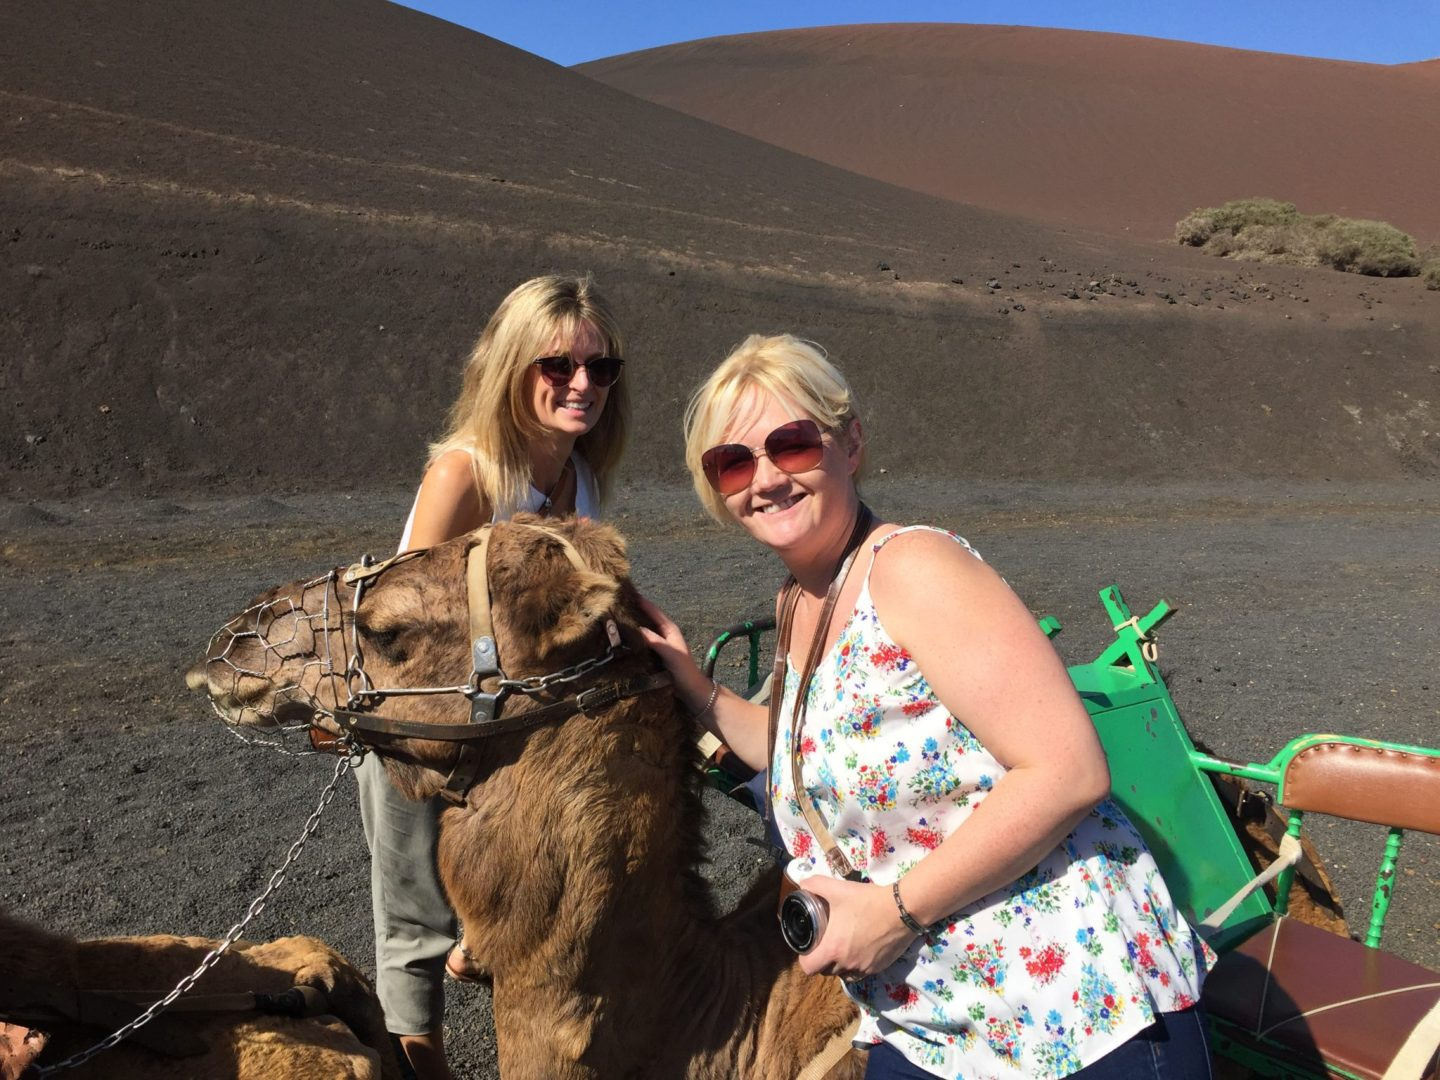 Is it worth returning to Lanzarote?